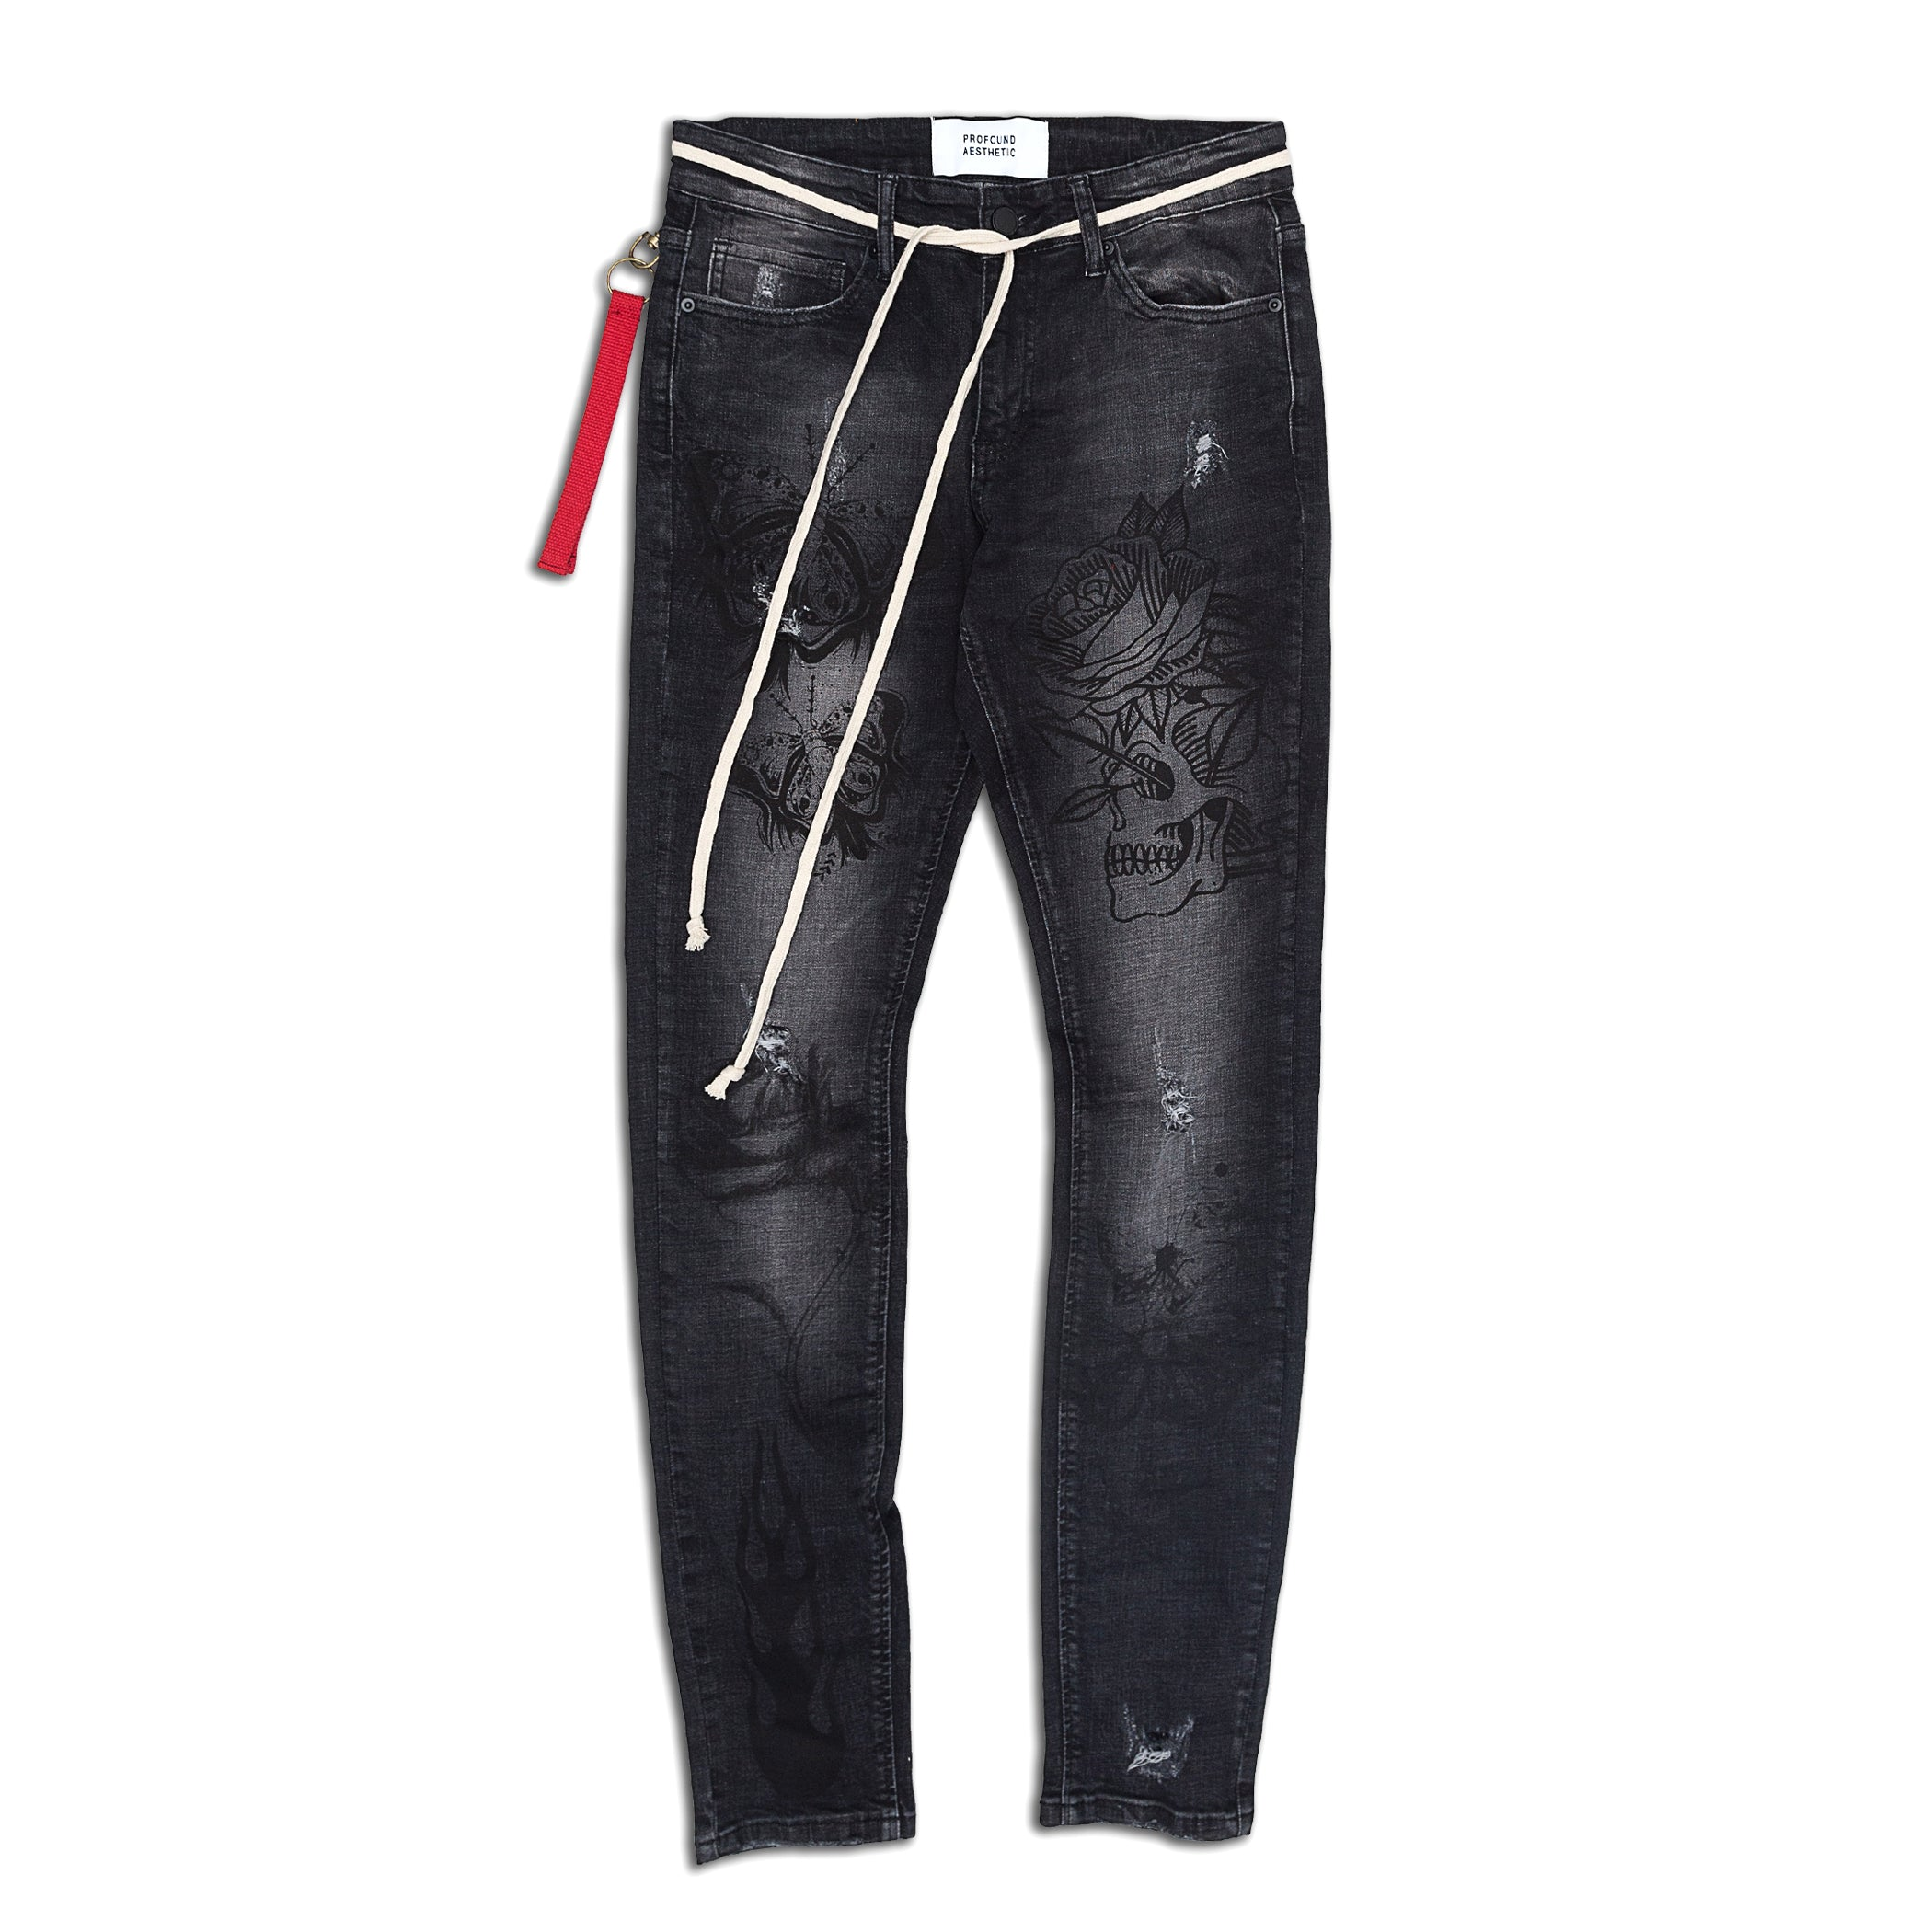 Profound Aesthetic - Truth in Flames Jeans